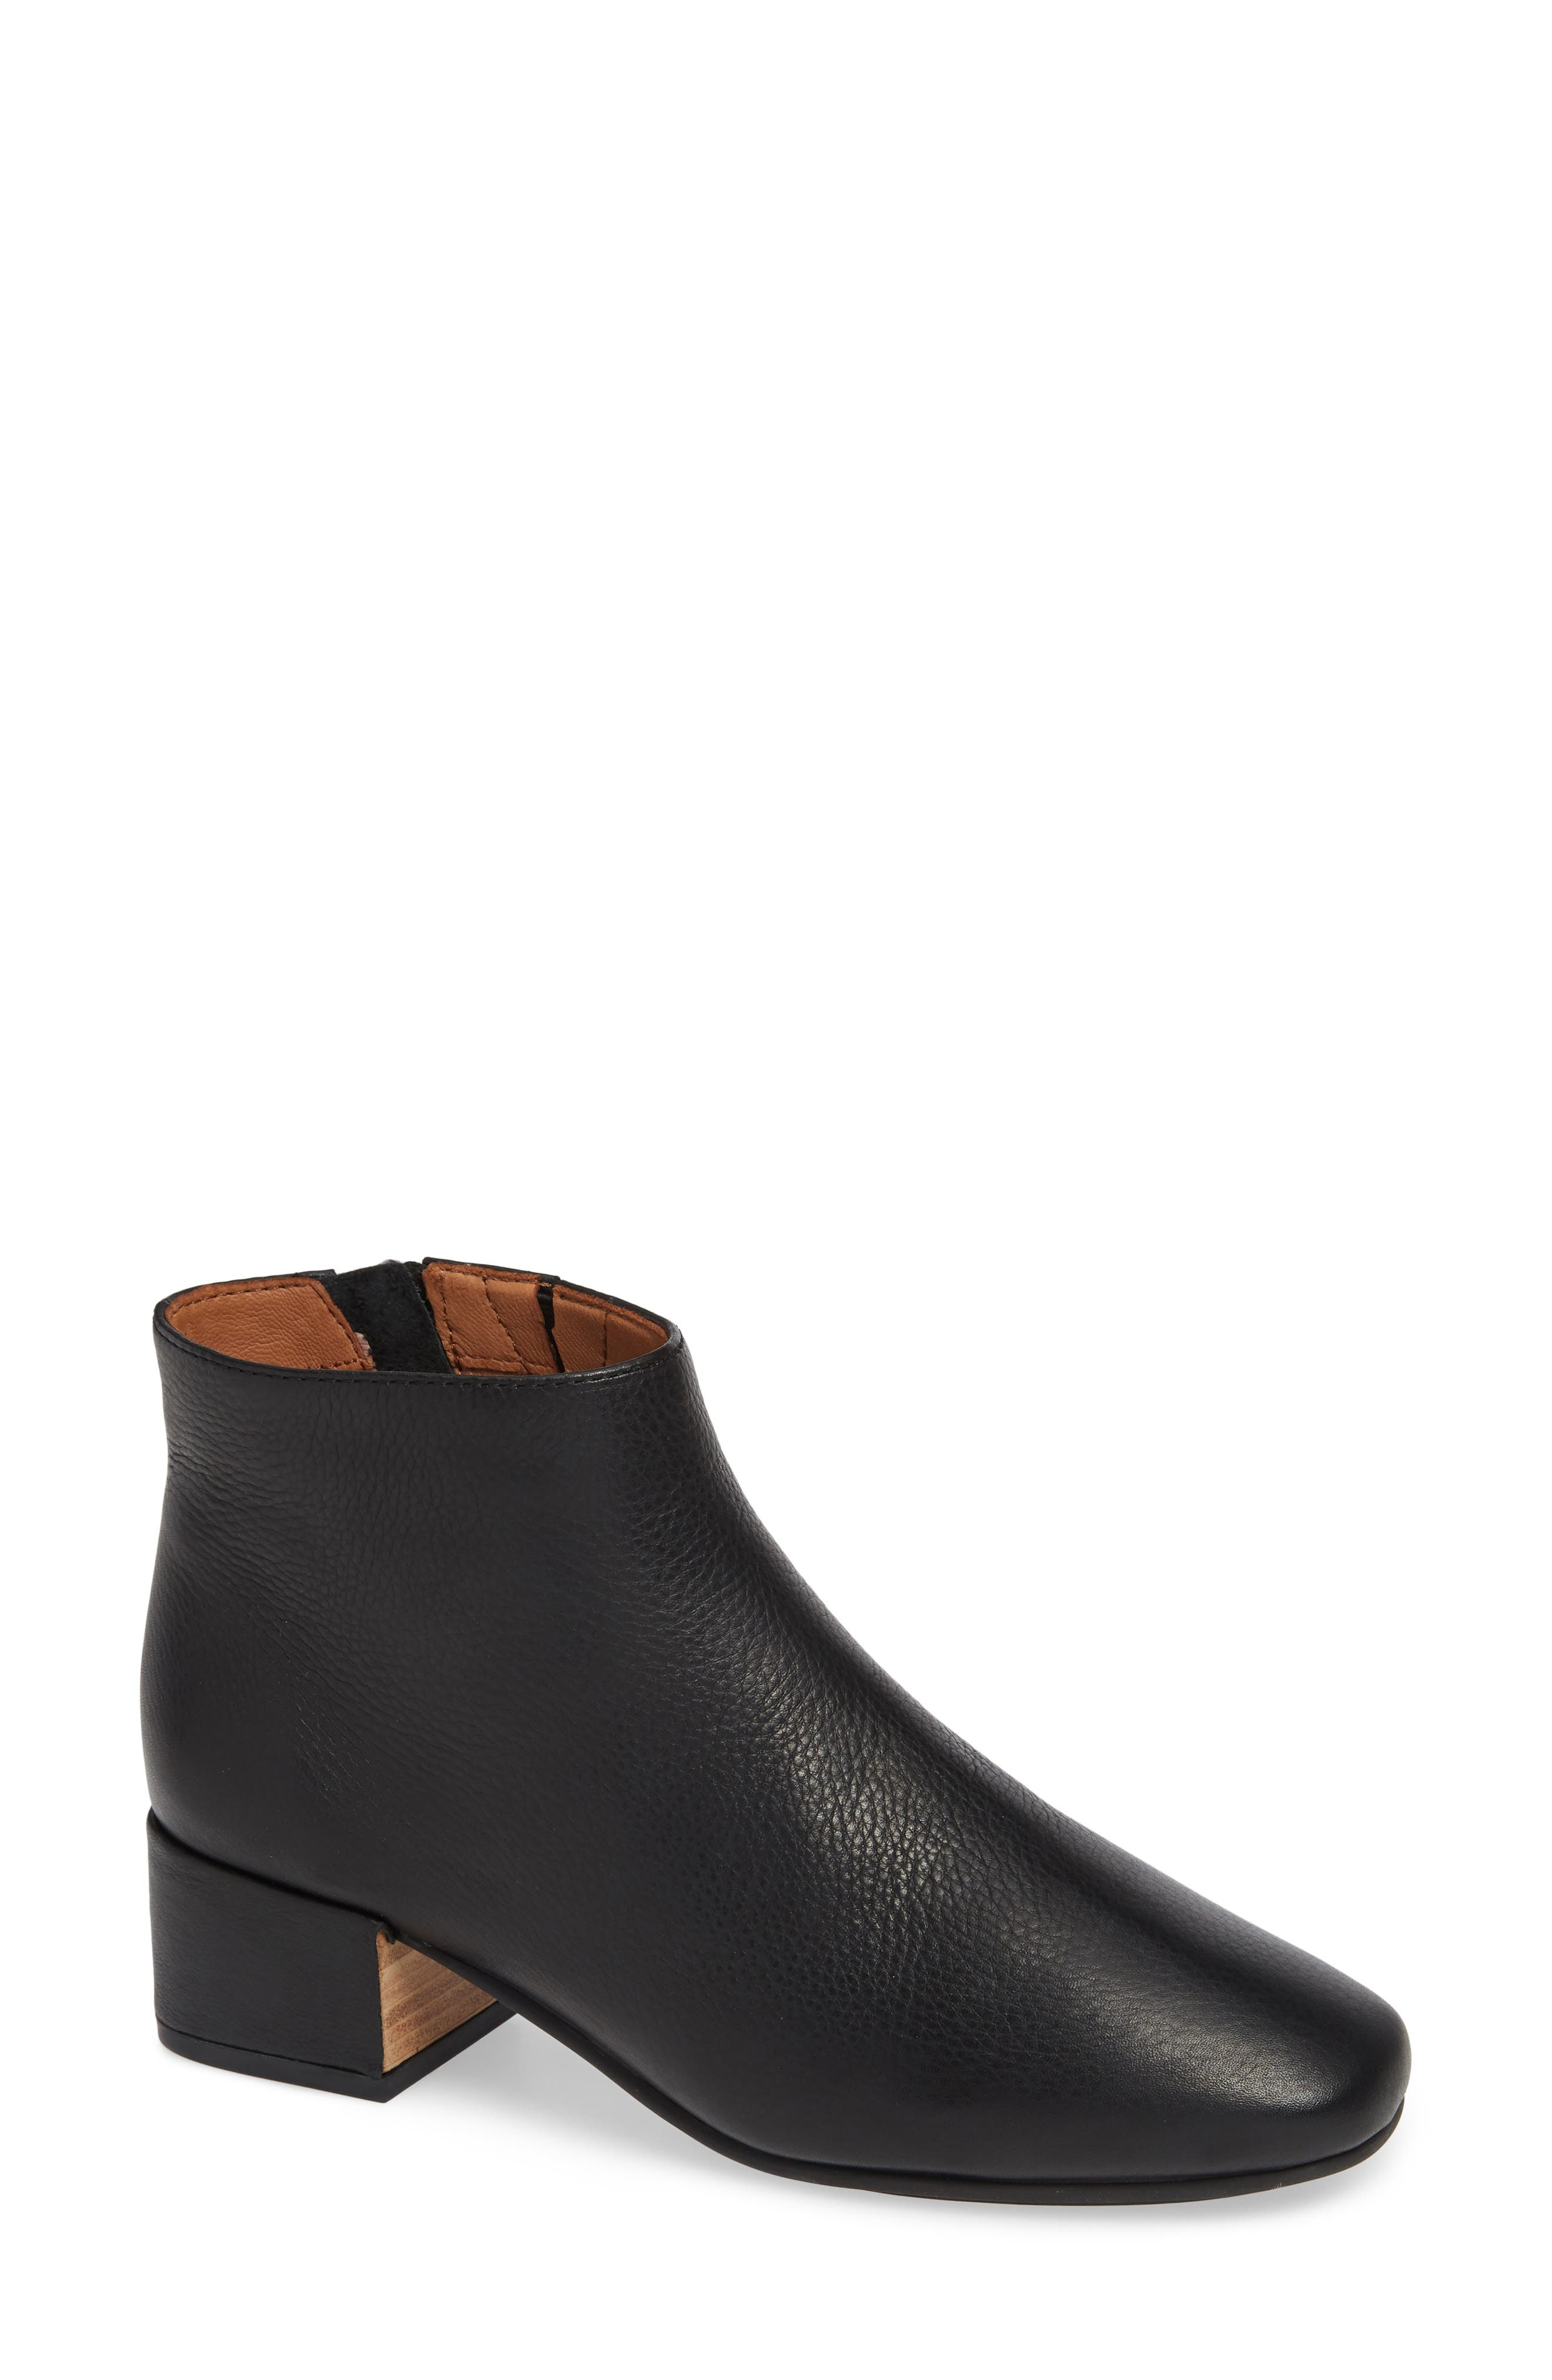 GENTLE SOULS BY KENNETH COLE, Ella Bootie, Main thumbnail 1, color, BLACK LEATHER